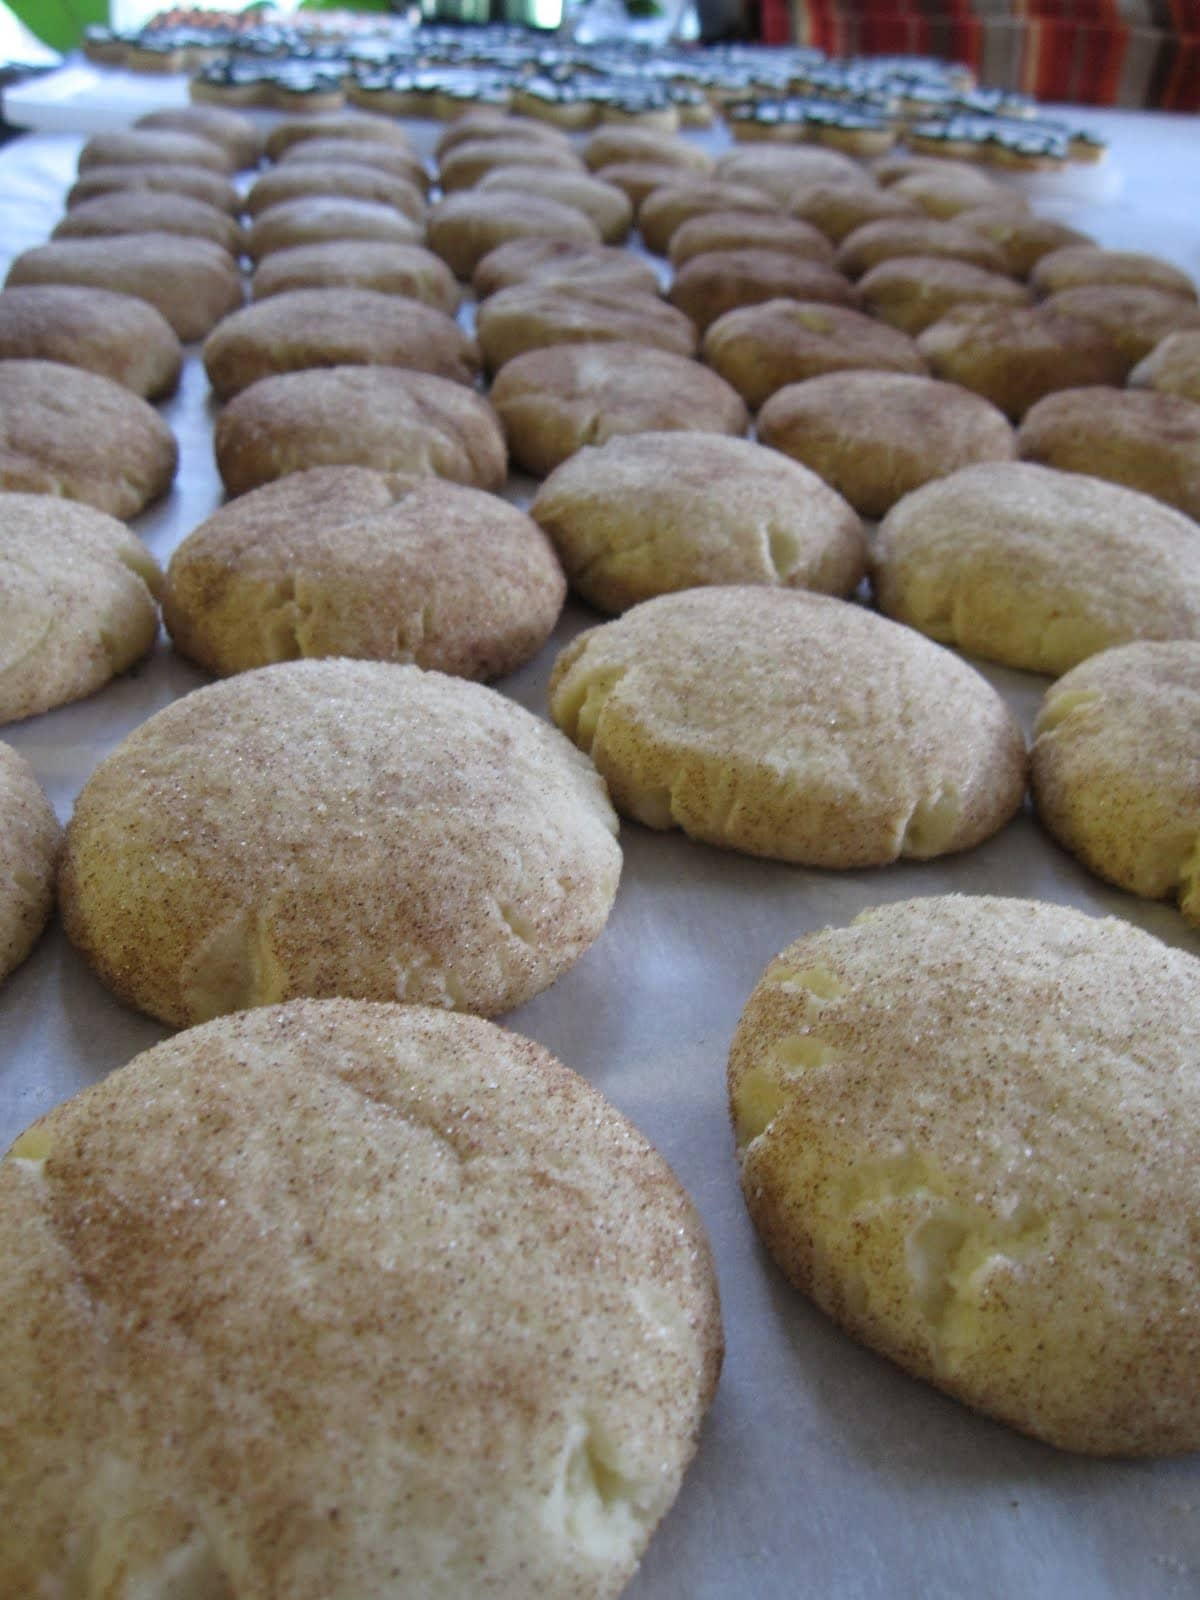 A batch of snickerdoodle cookies on parchment paper